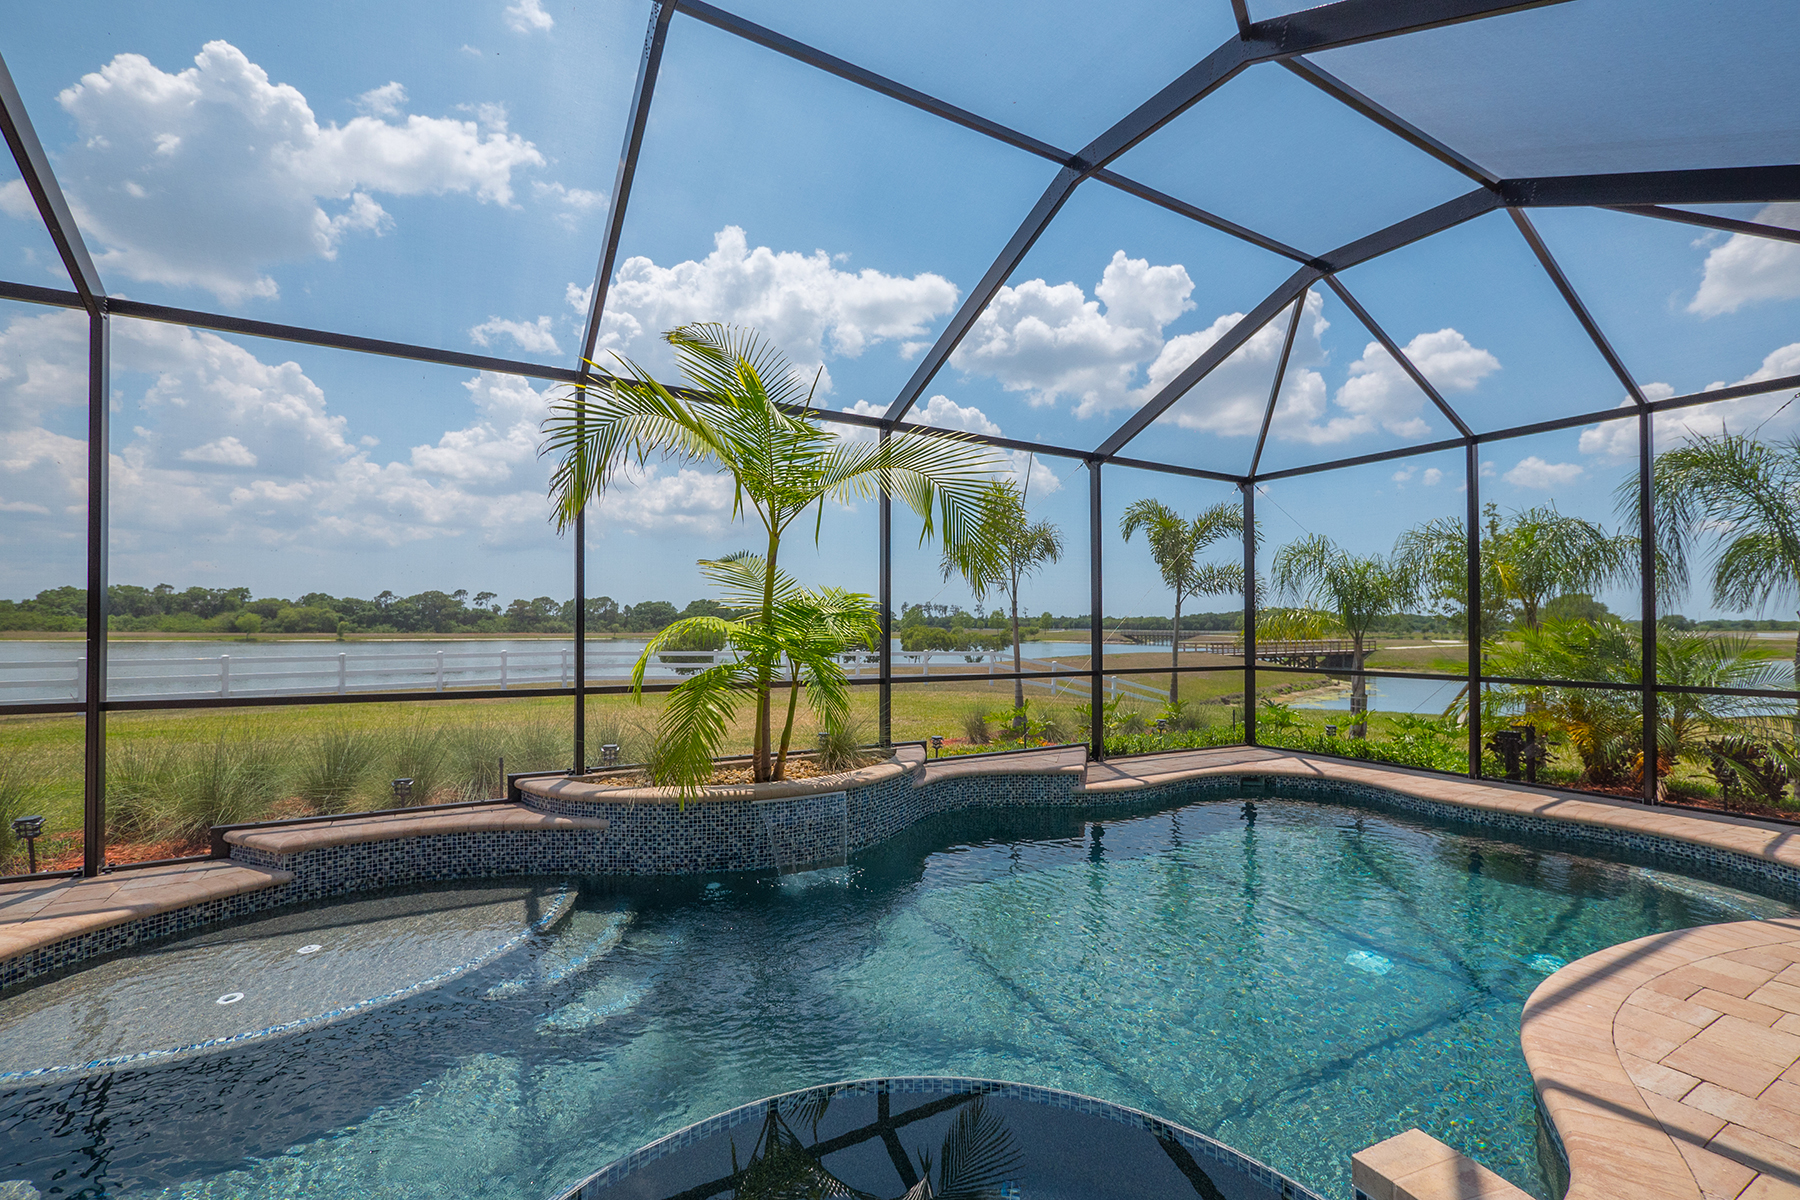 Single Family Home for Sale at BRIDGEWATER 5632 Cloverleaf Lakewood Ranch, Florida, 34211 United States